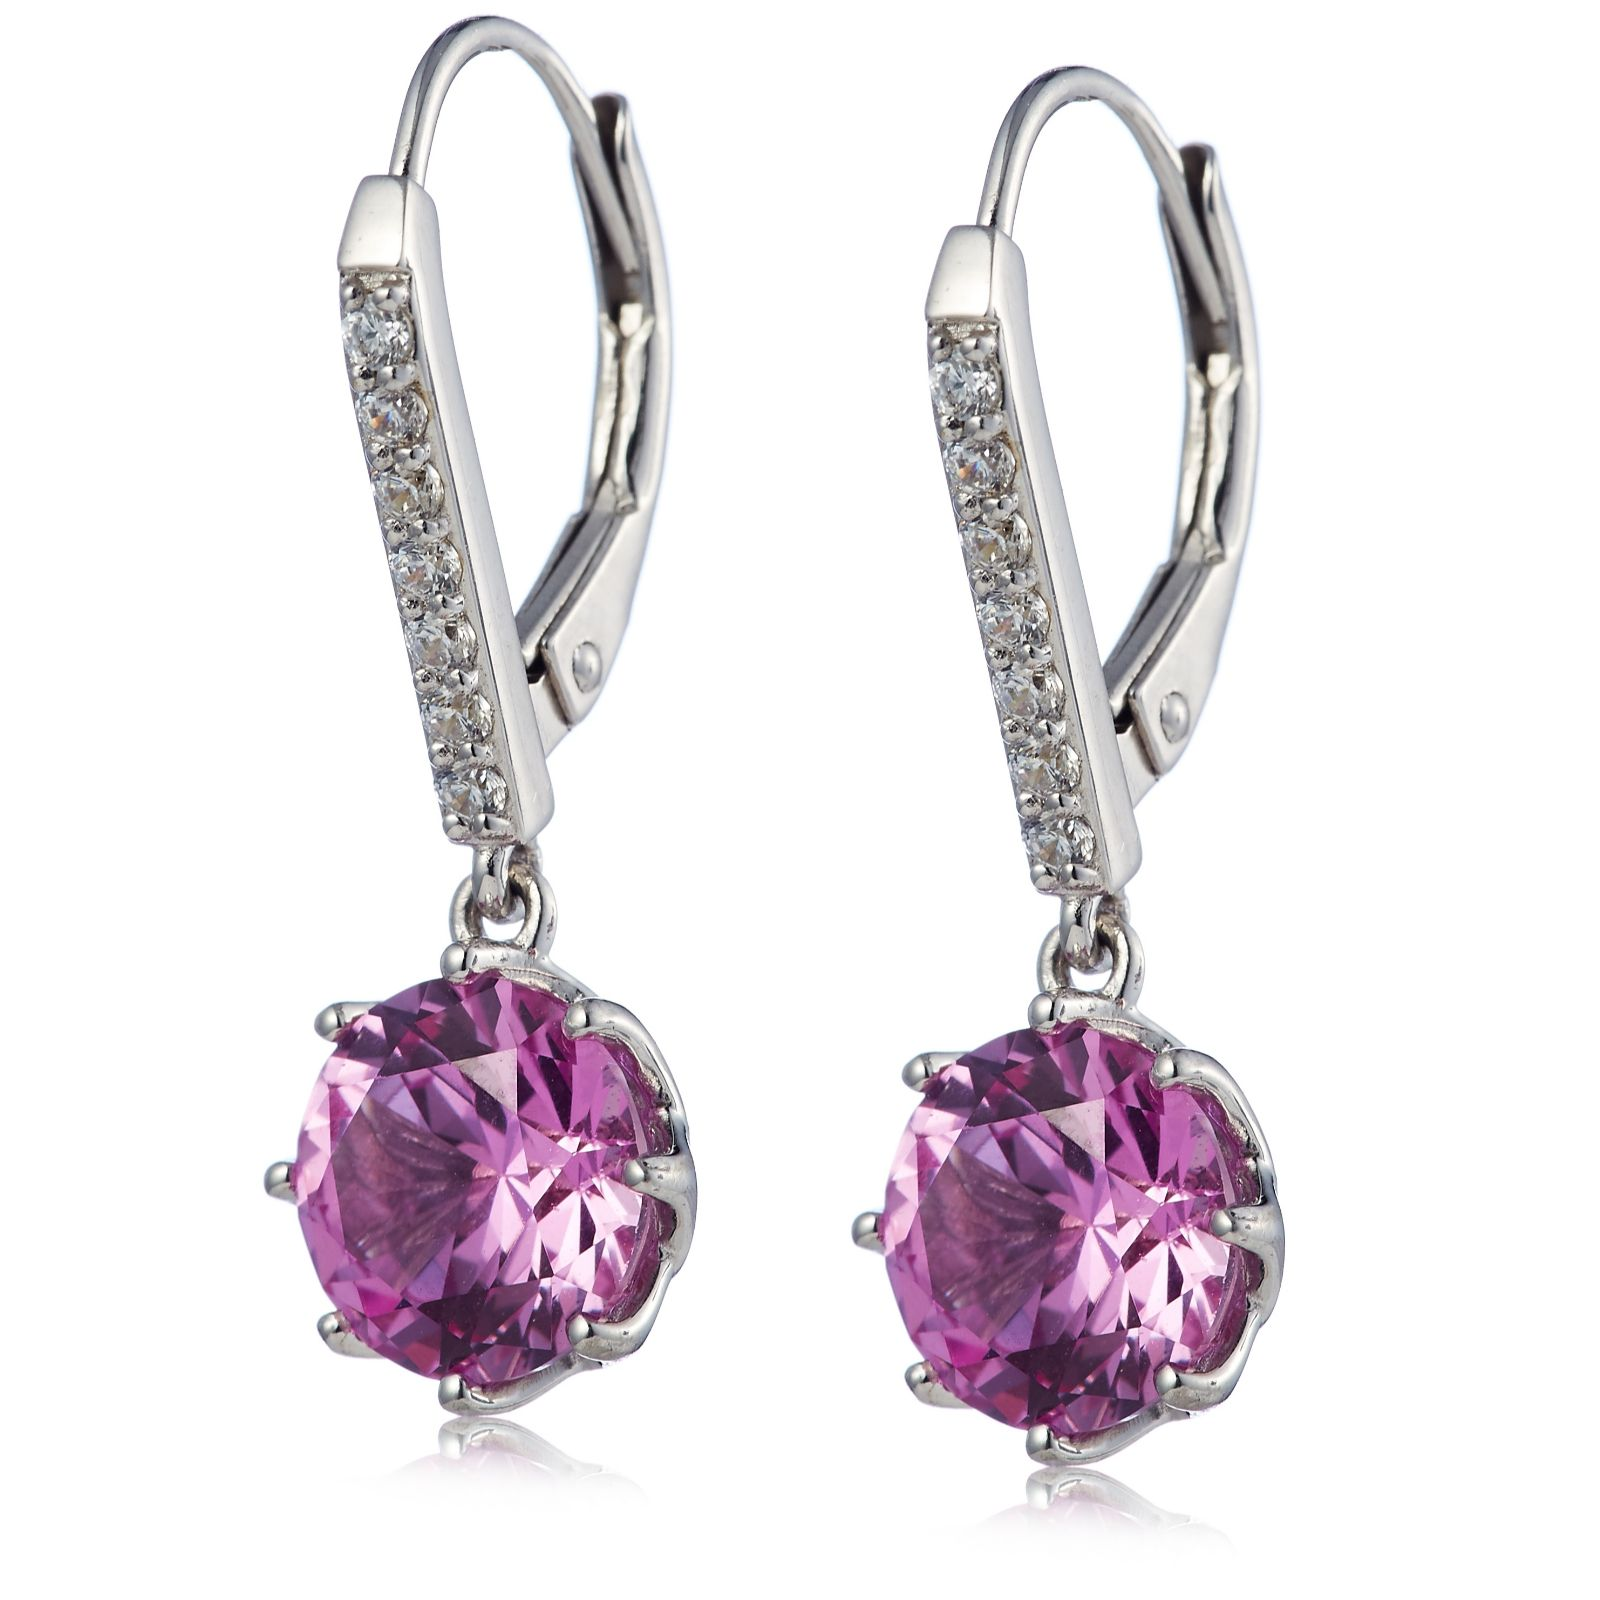 1108d8920 Diamonique 4ct tw 8 Prong Simulated Gemstone Leverback Earrings ...